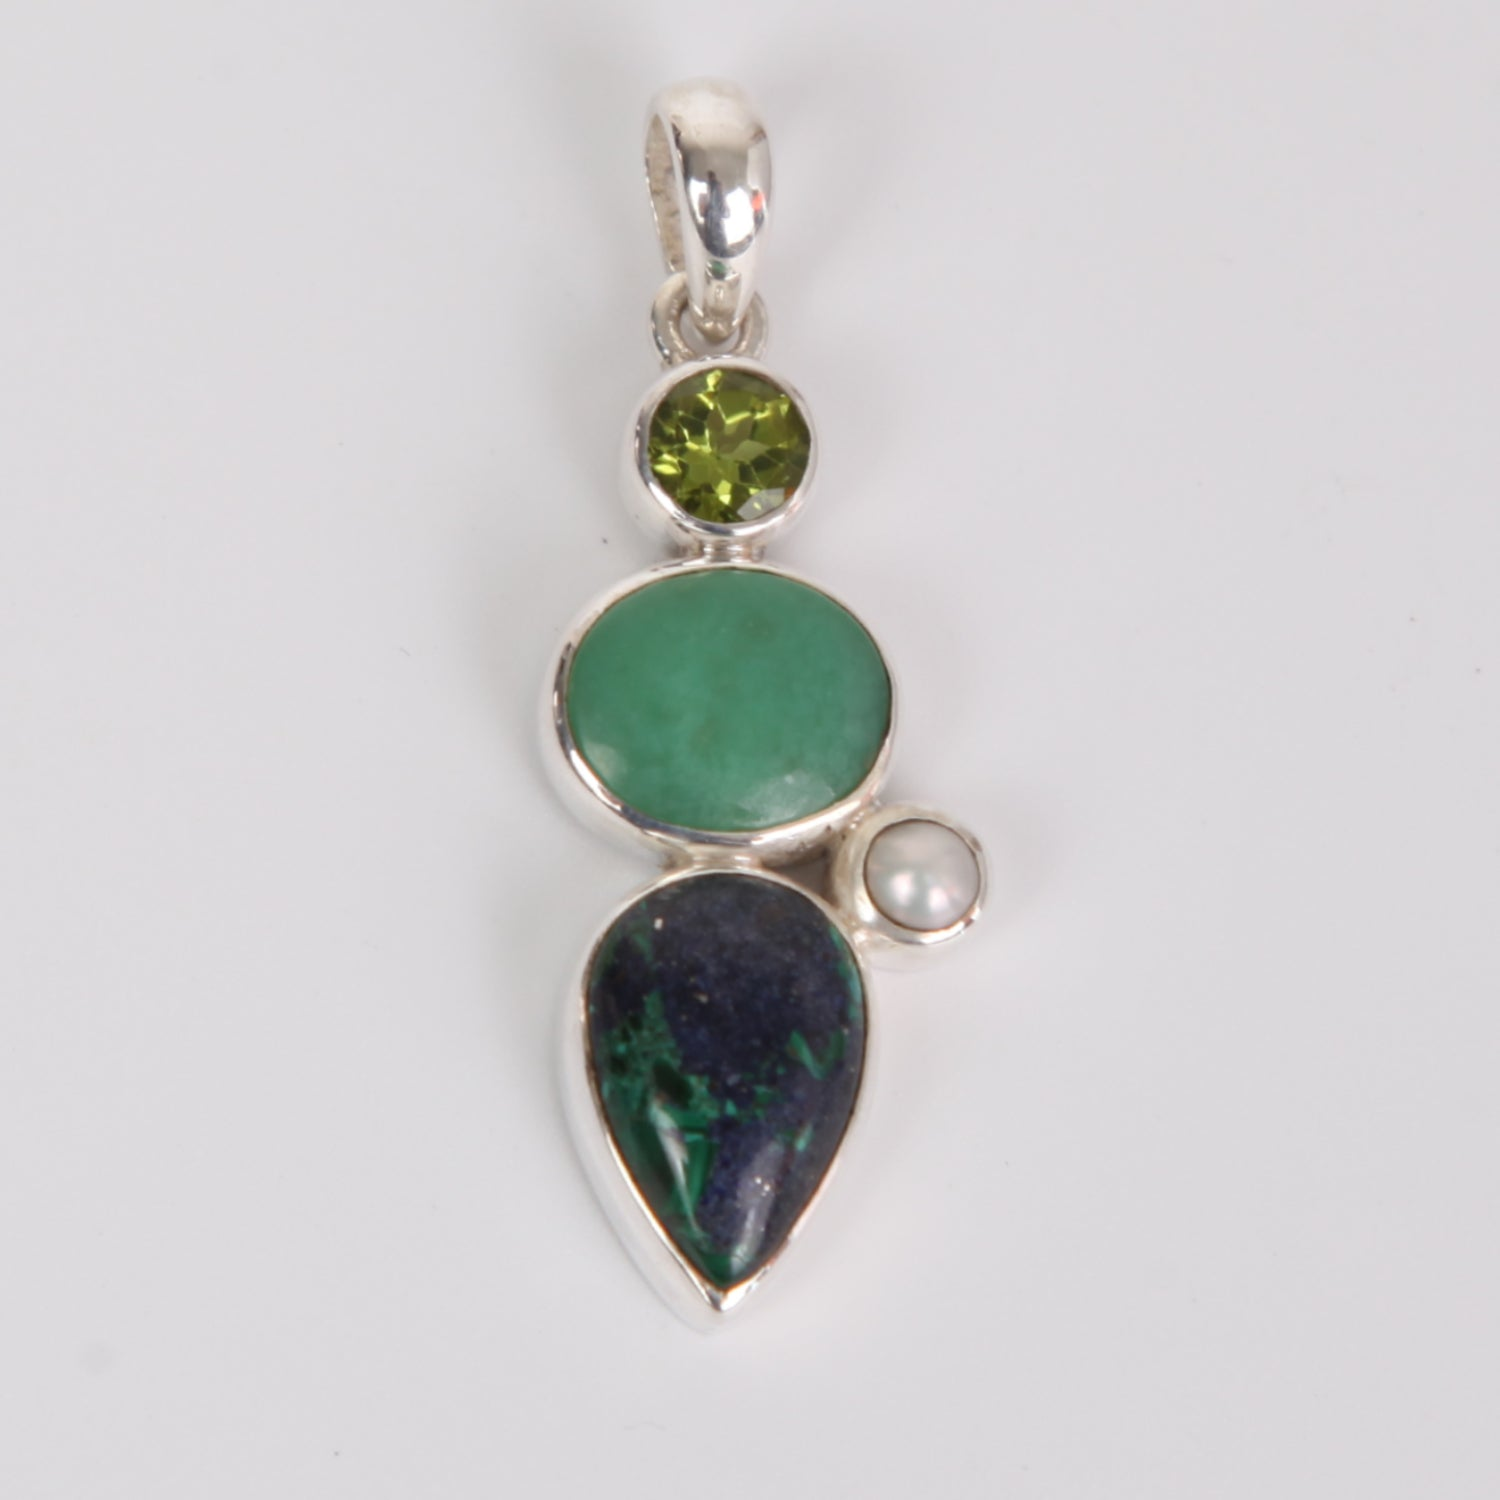 Azurite Malachite Sterling Silver Pendant with Chryosoprase